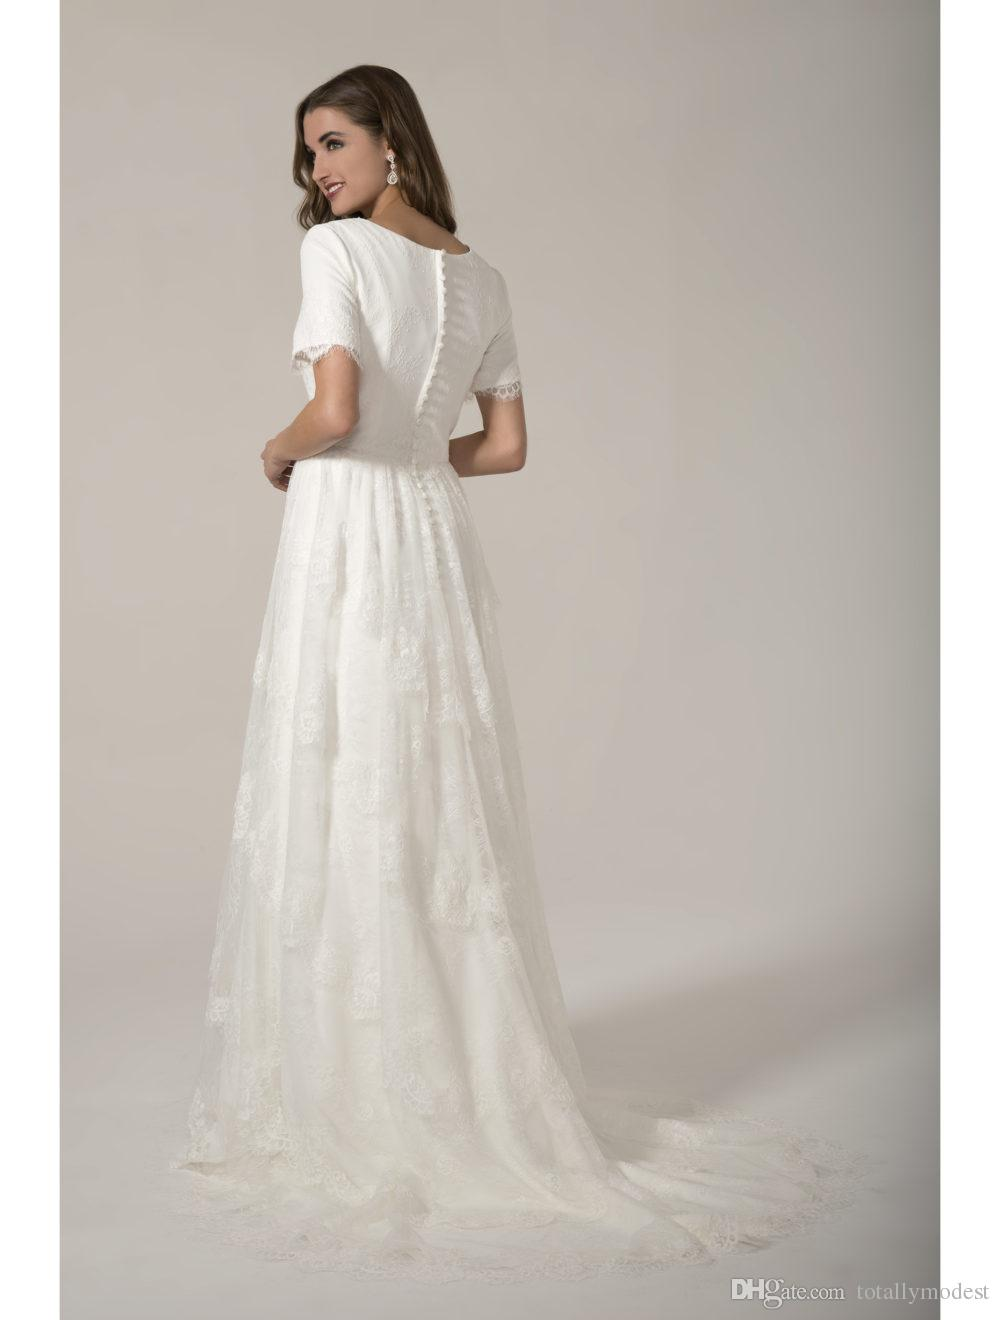 Lace Modest Wedding Dresses With Short Sleeves Scoop Neck Buttons Back Boho Women Wedding Gowns Outdoor bridal Gowns Custom Made